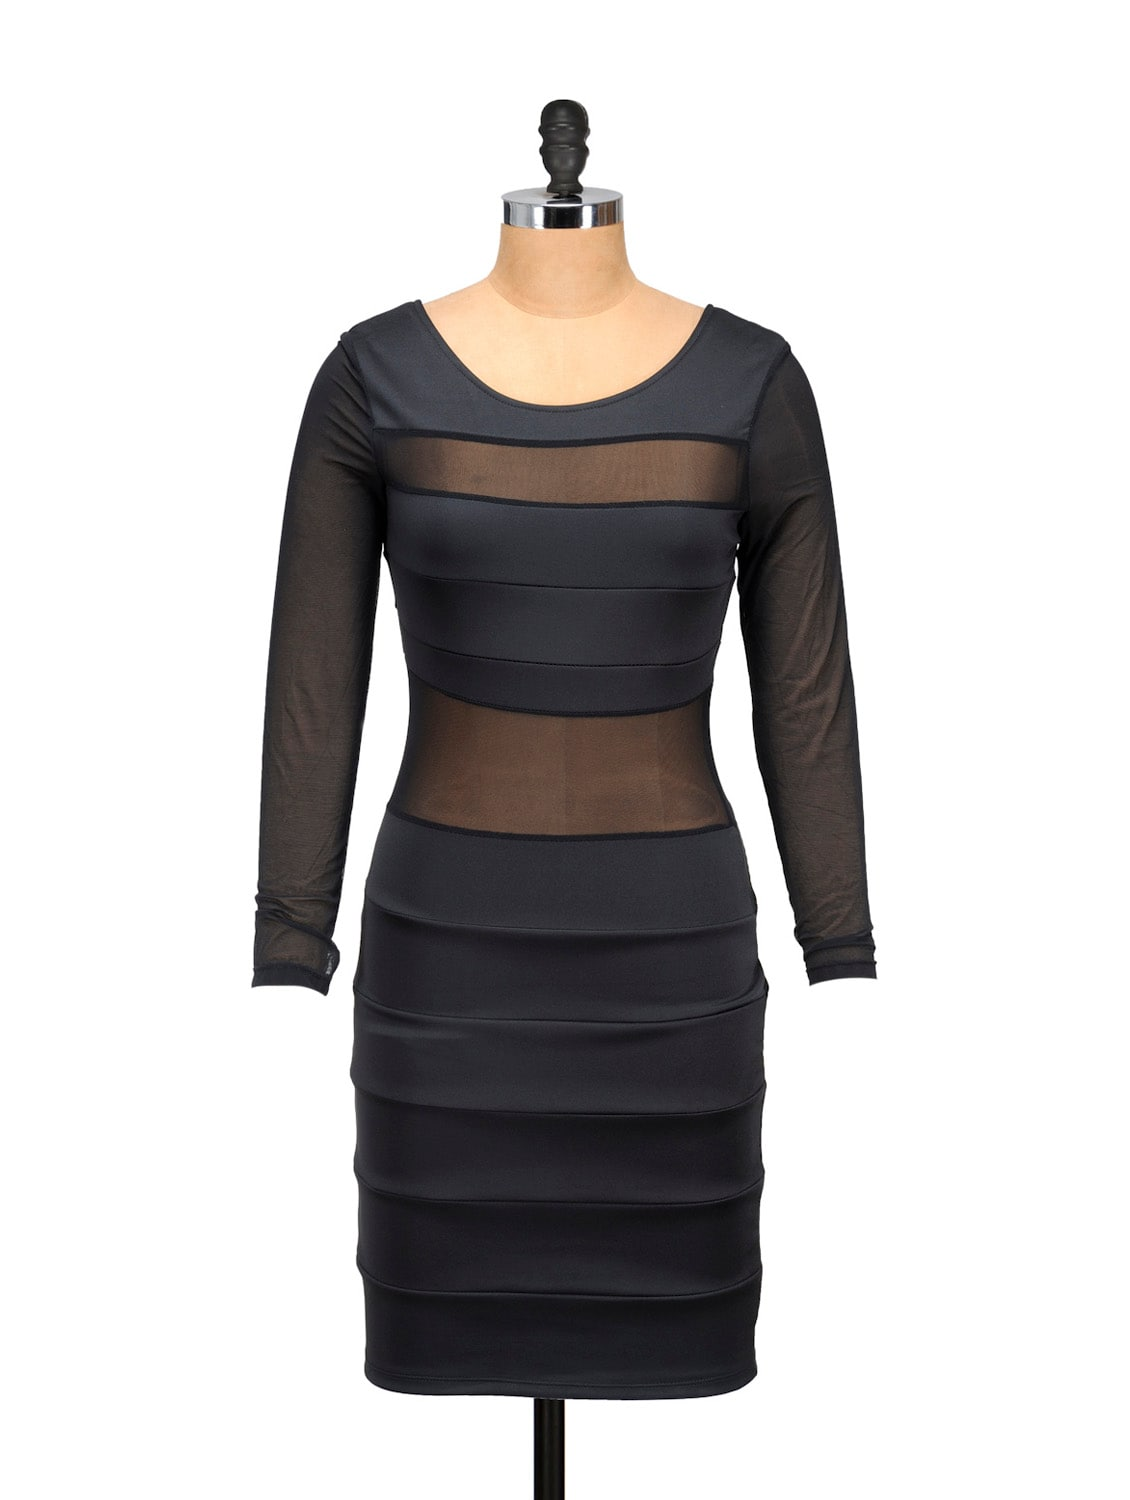 Black Evening Dress With Mesh Inserts - Ruby